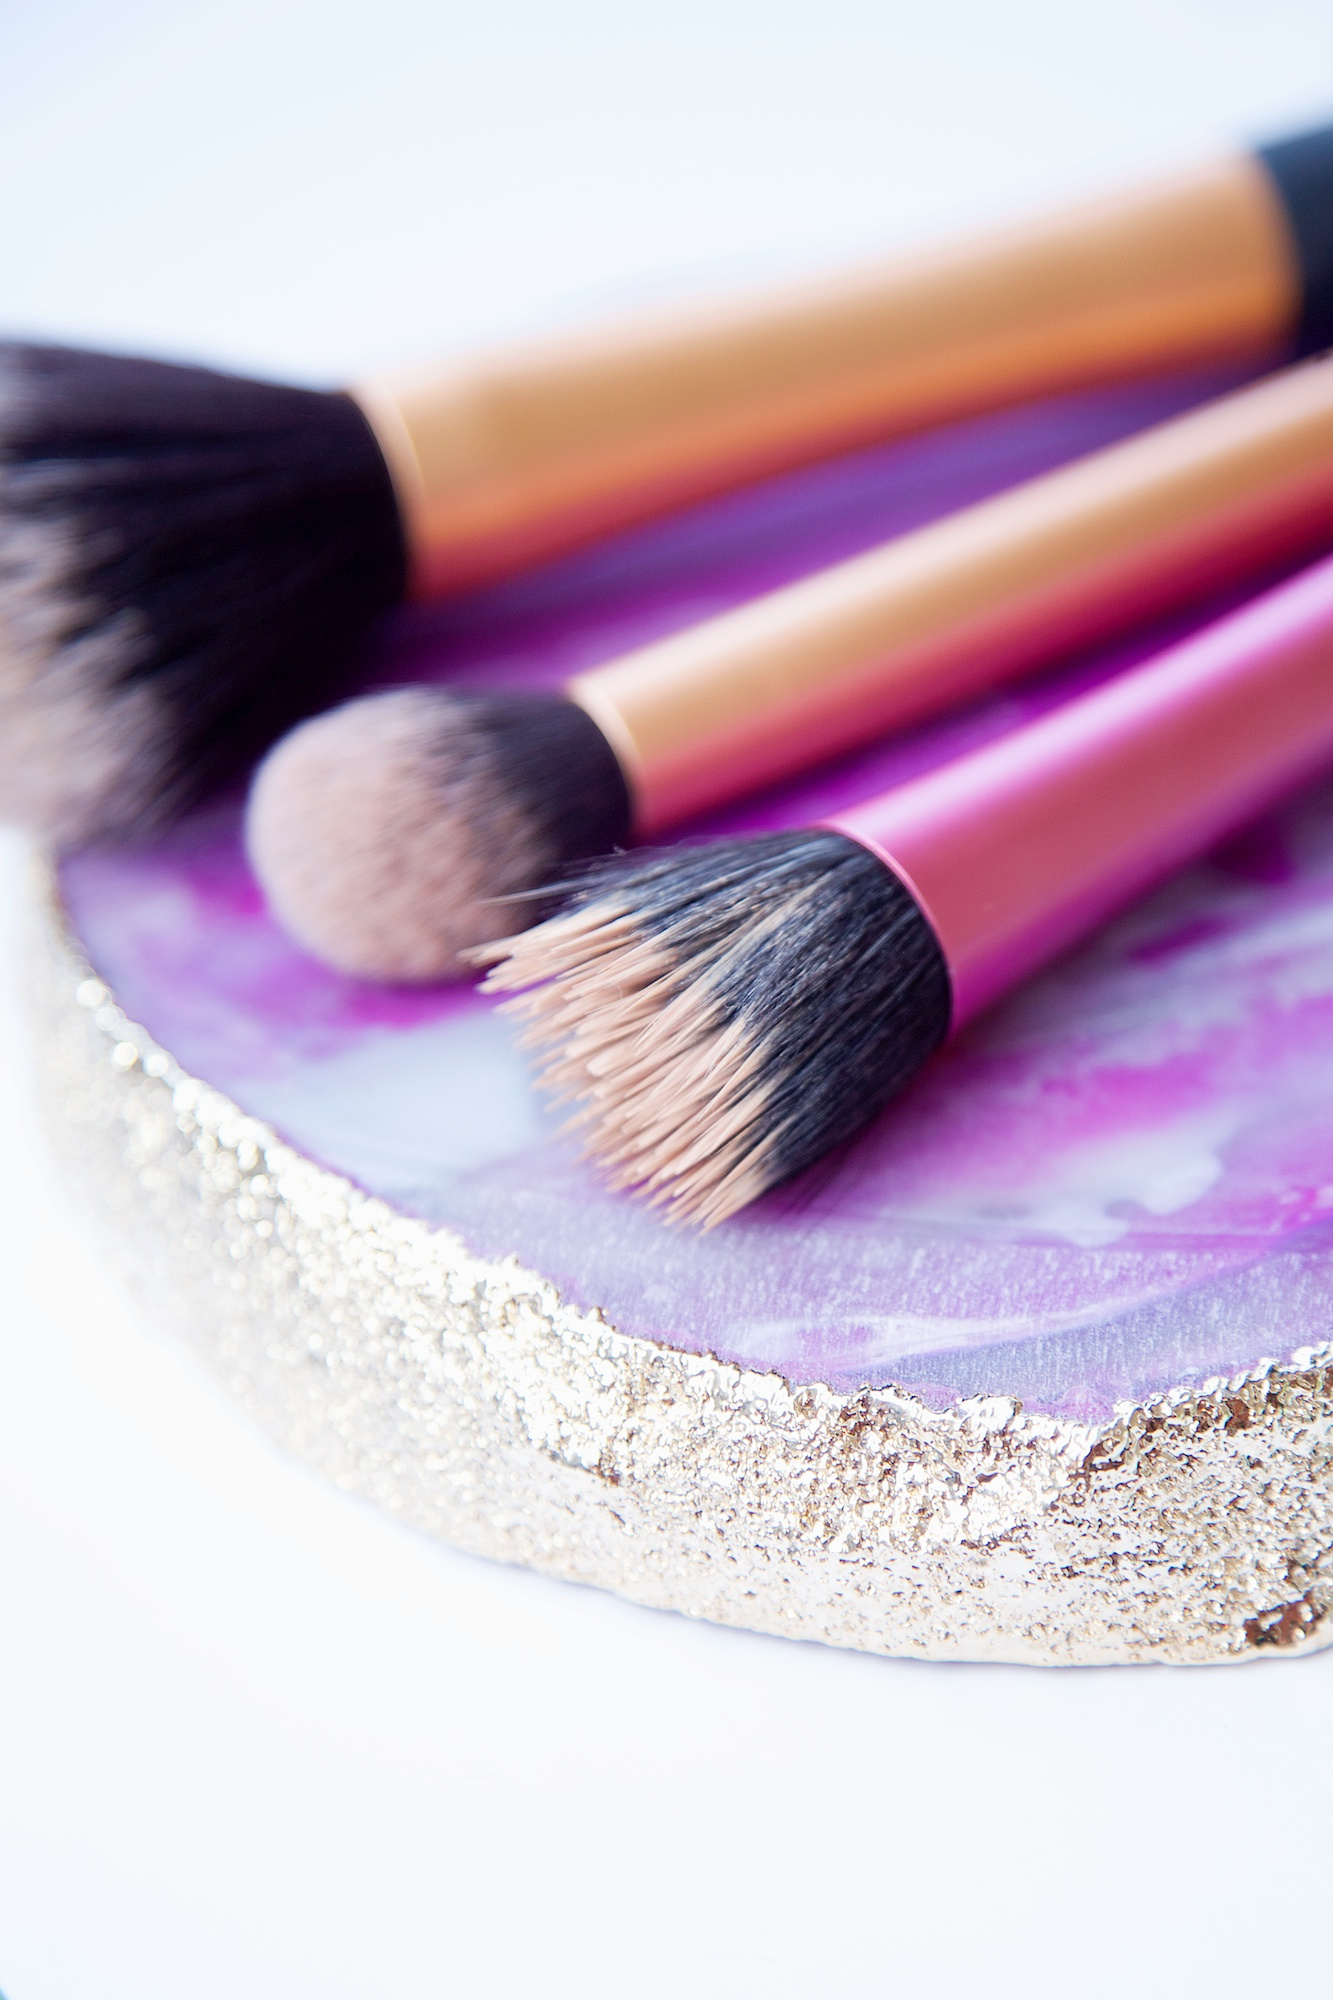 How to clean make up brushes